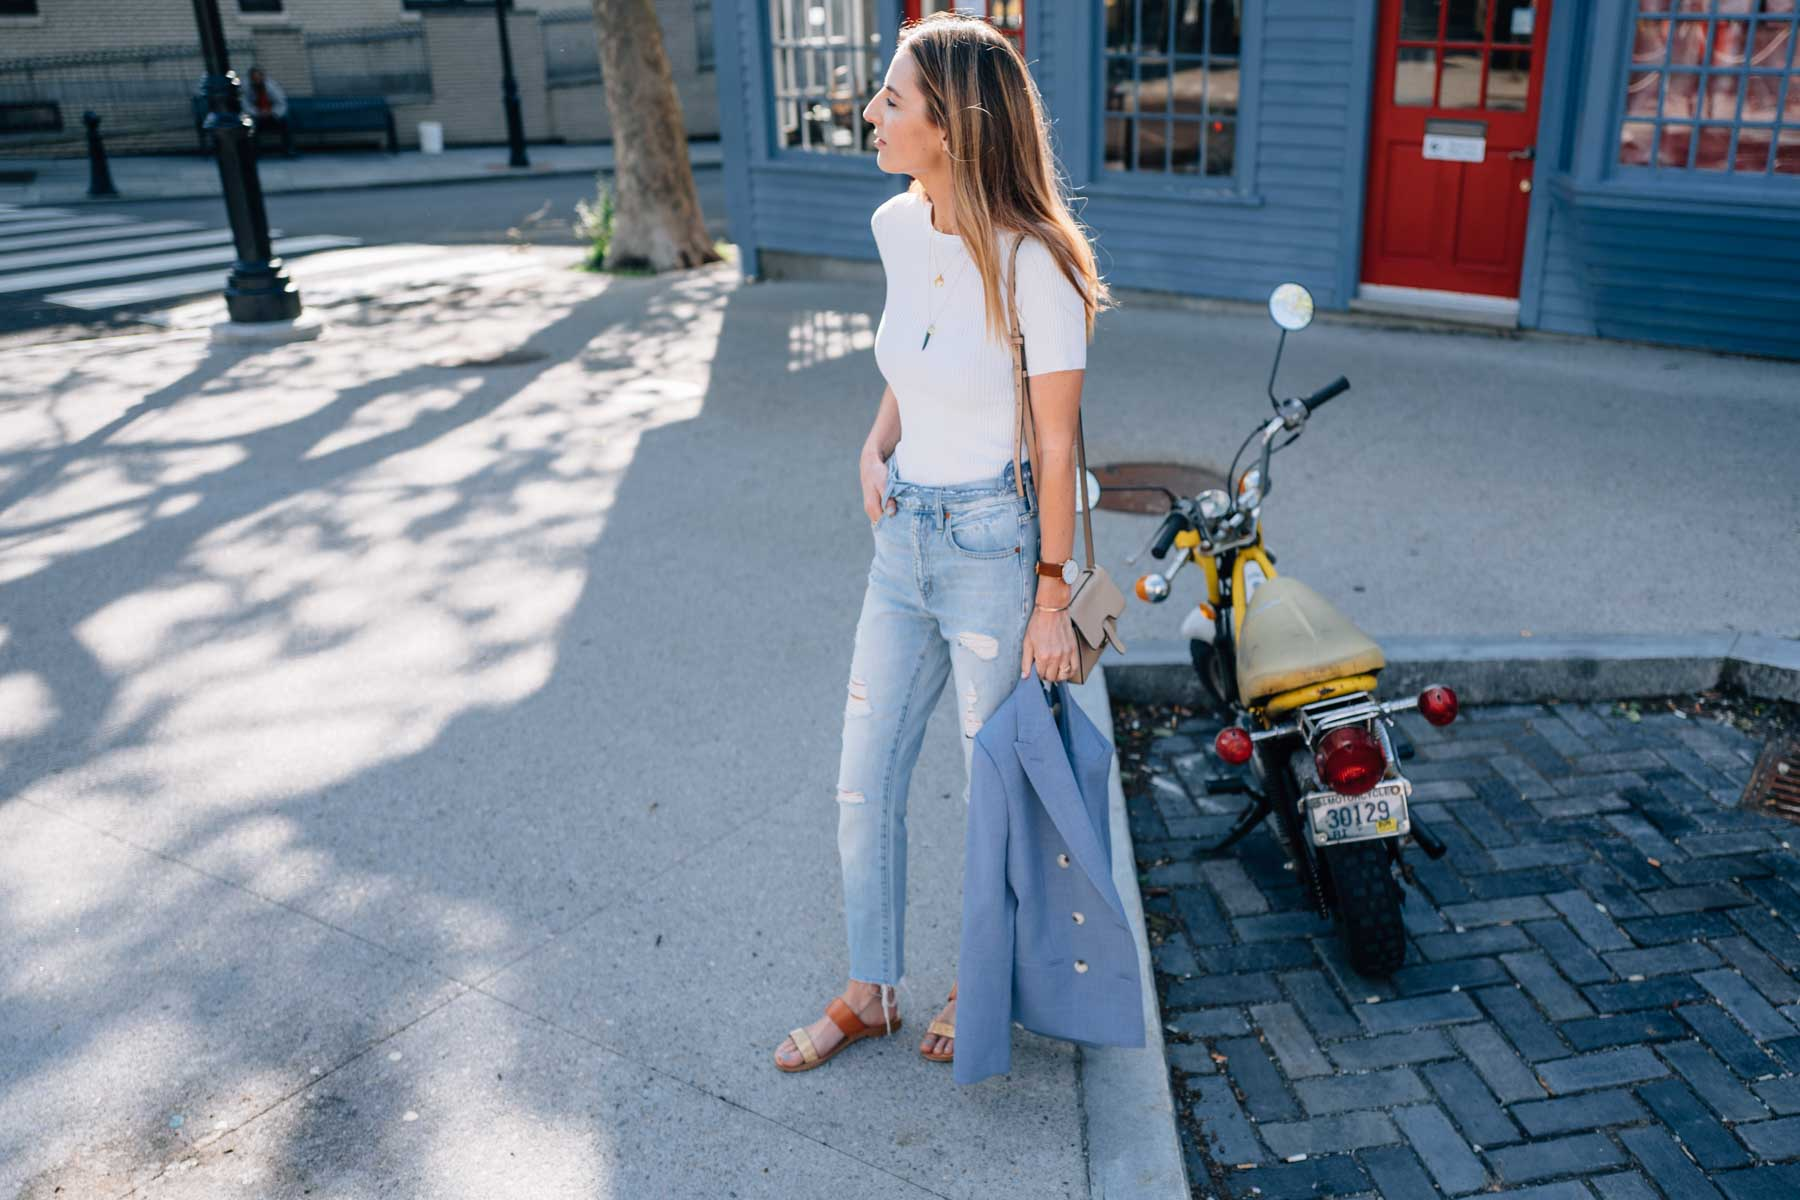 Jess Ann Kirby in Newport, RI wearing the Madewell Perfect Summer Jeans with Reiss Blazer